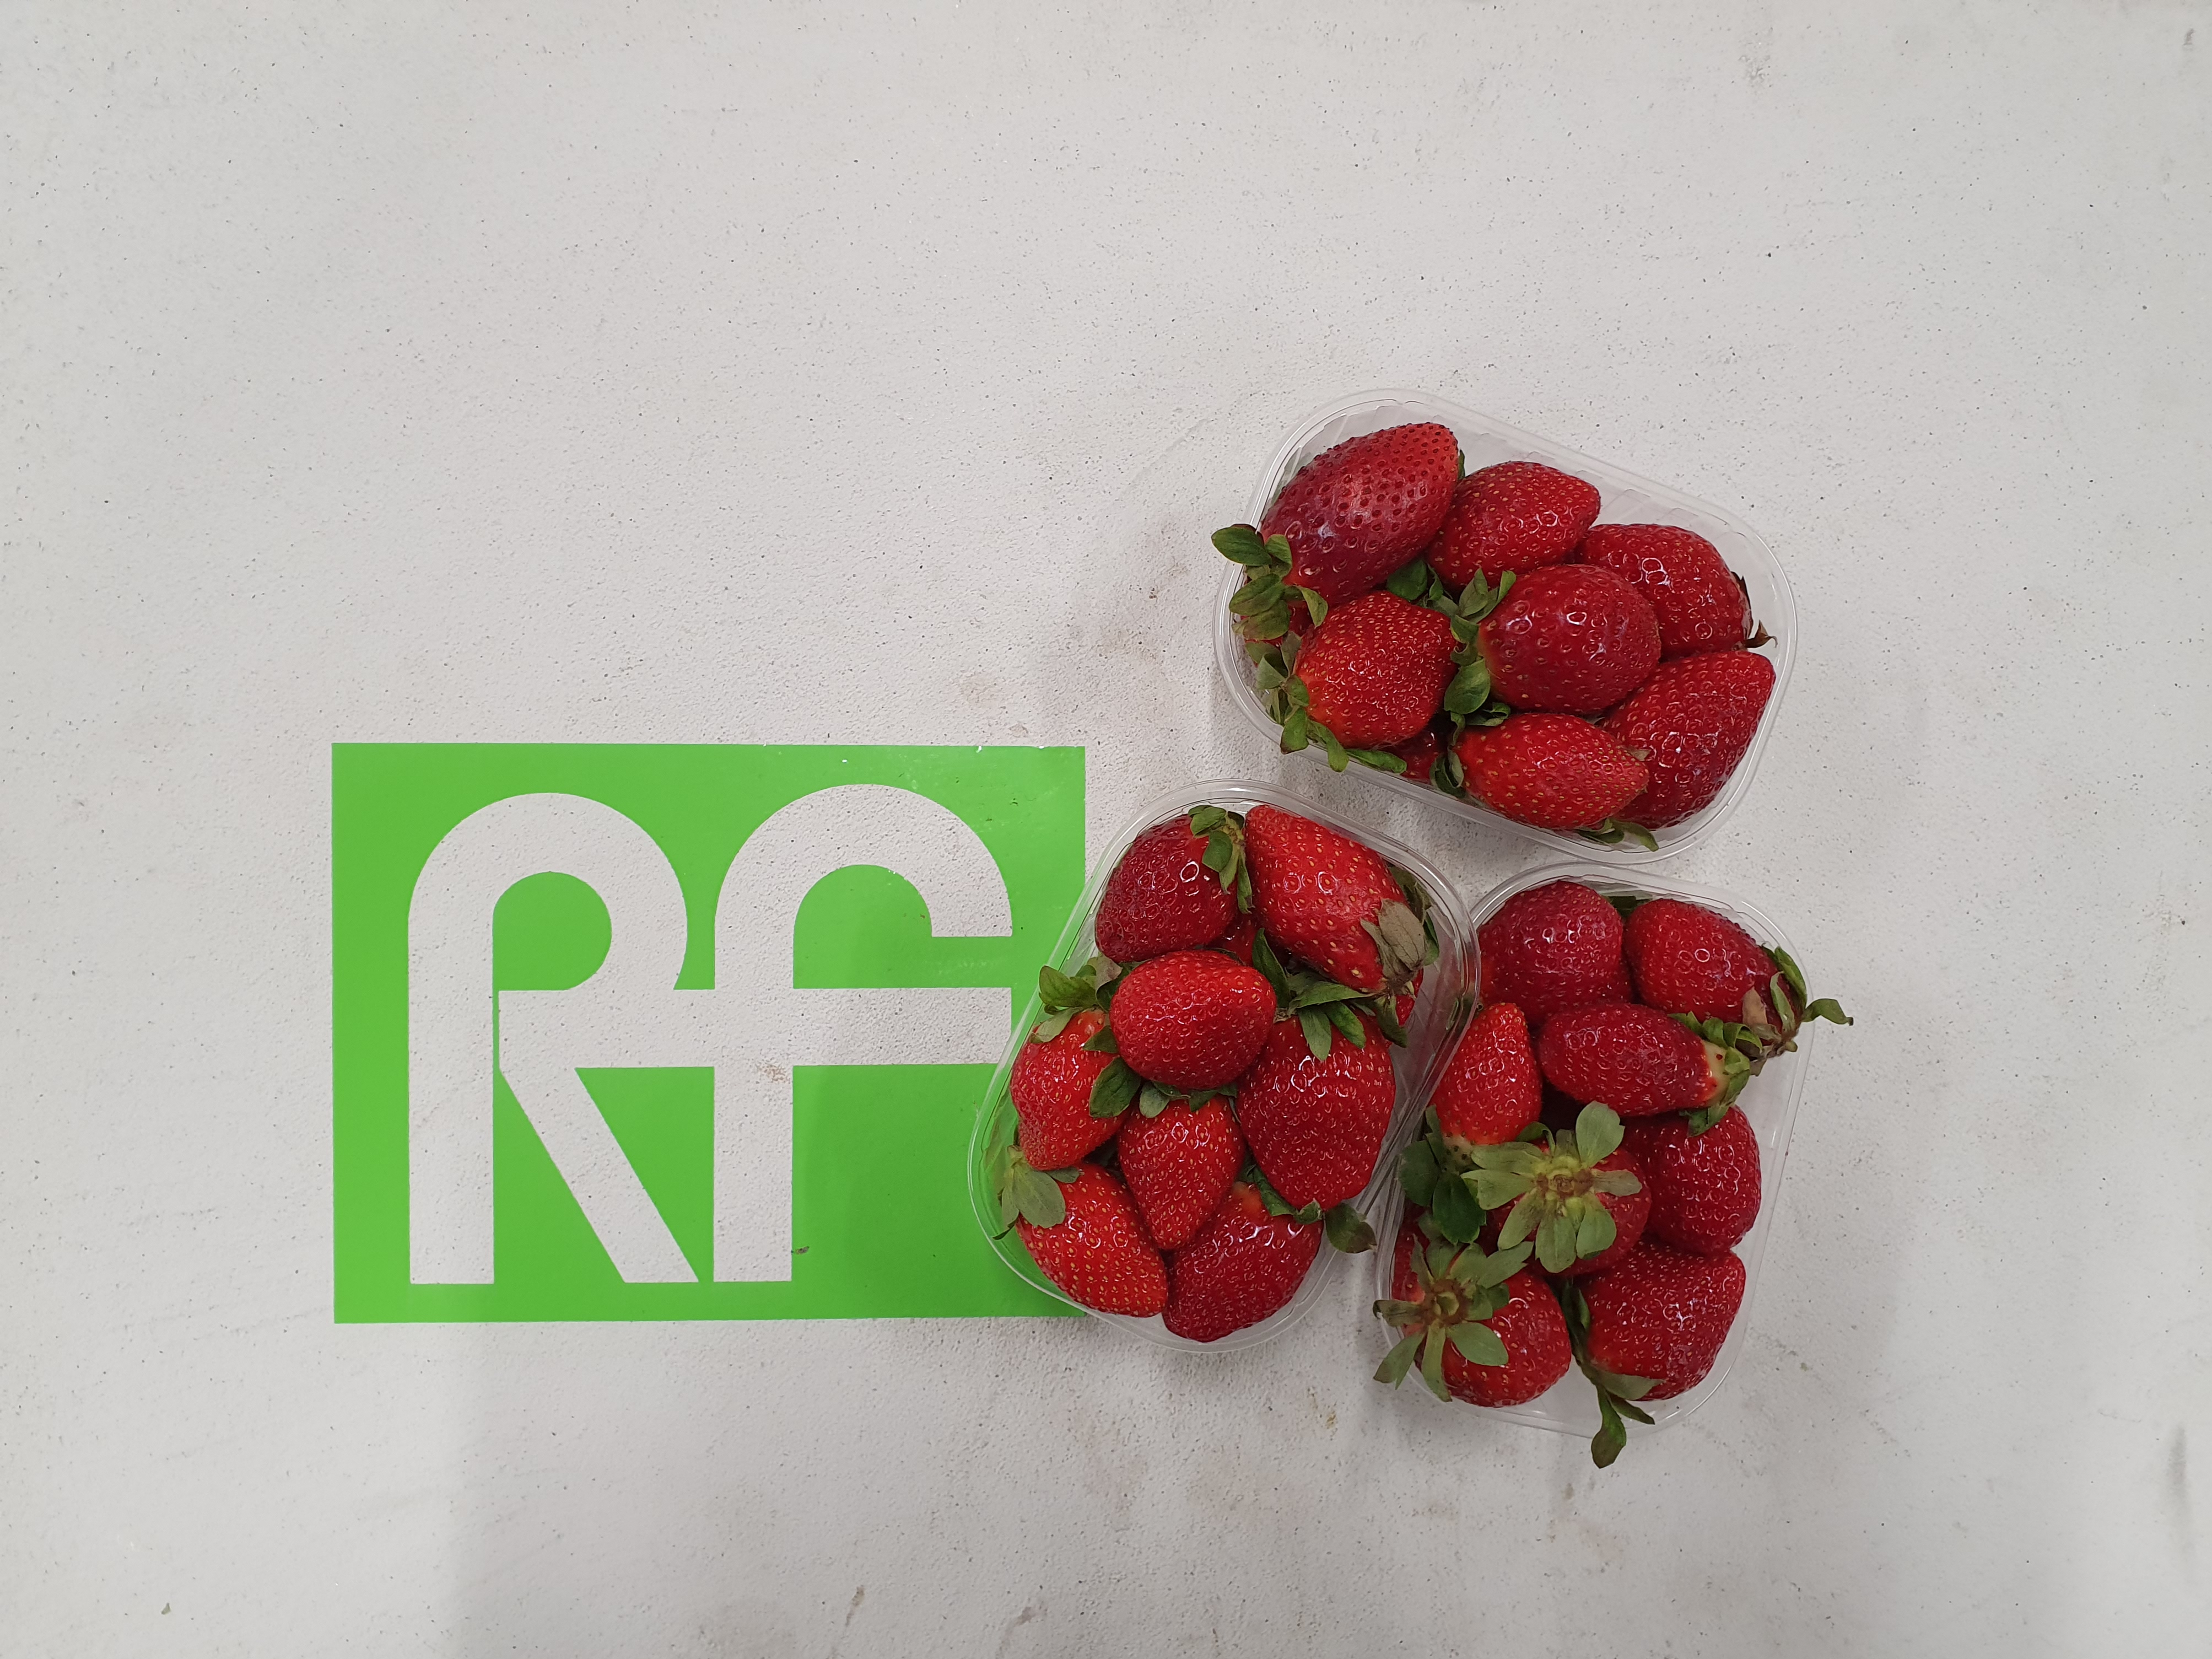 readyfrutta